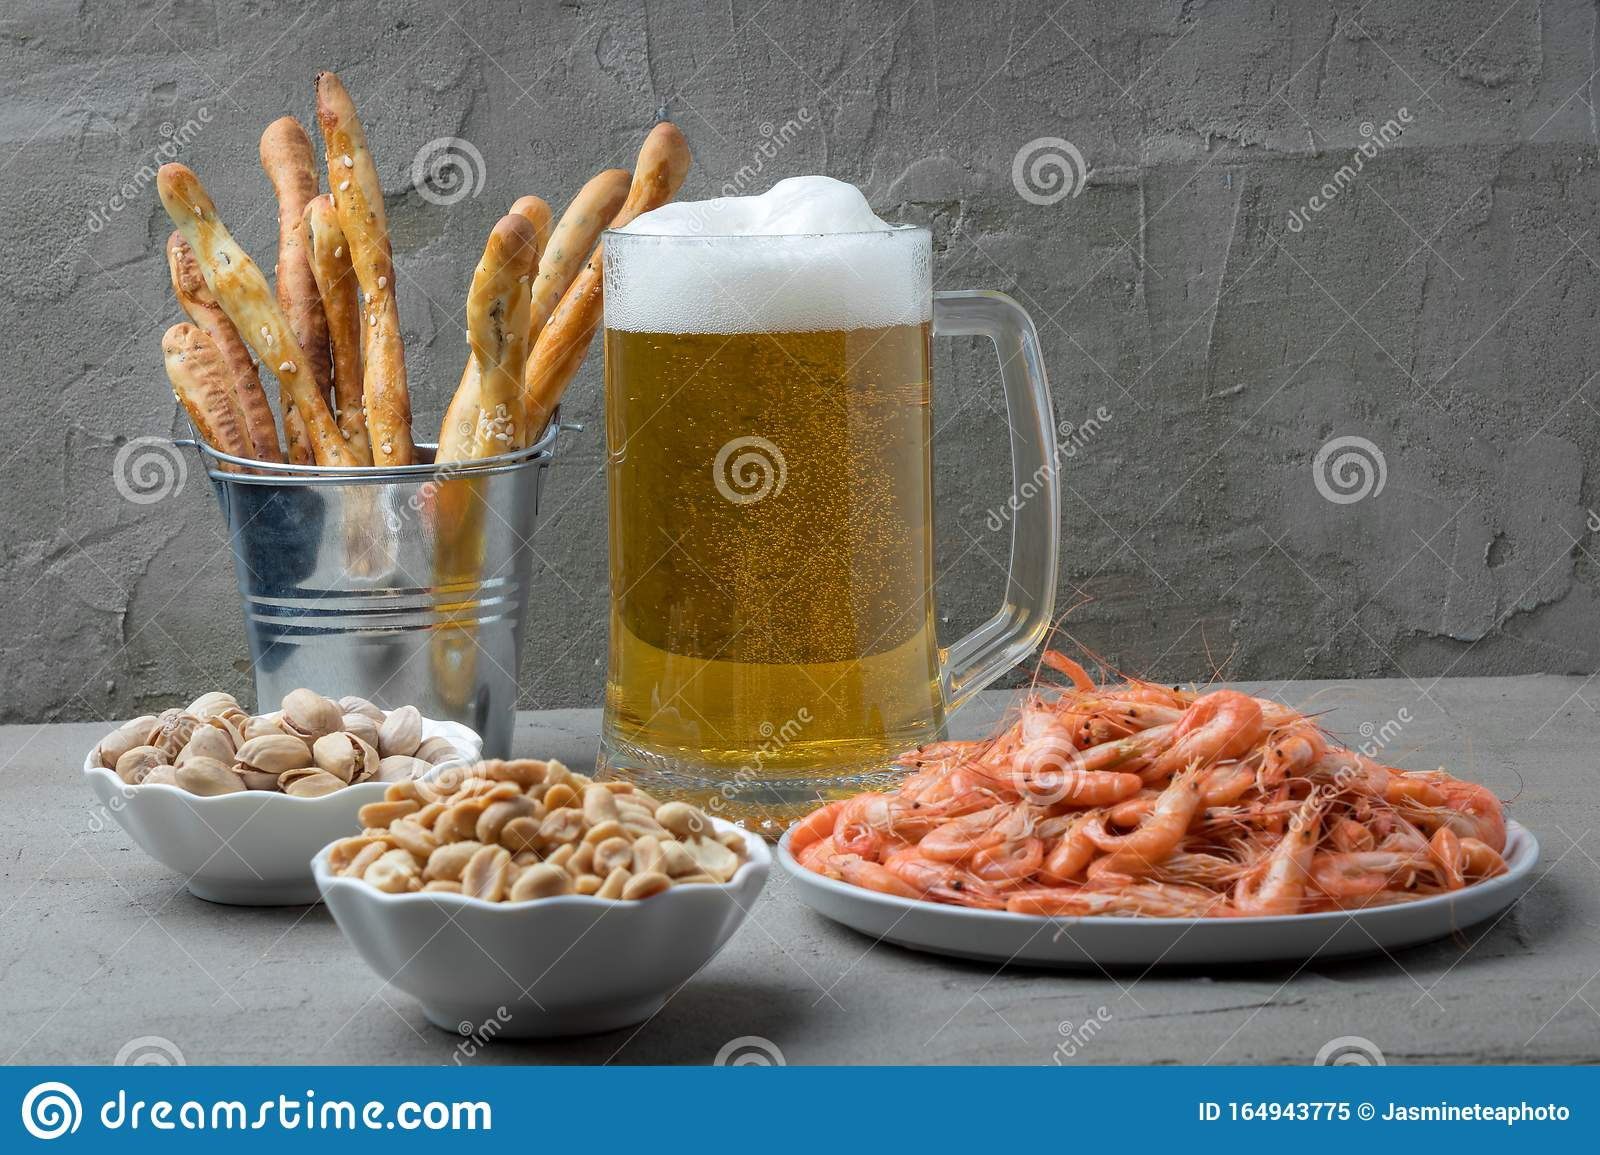 Mug Of Fresh Beer And Tasty Snacks On Grey Table Stock Image Image Of Alcohol Drink 164943775